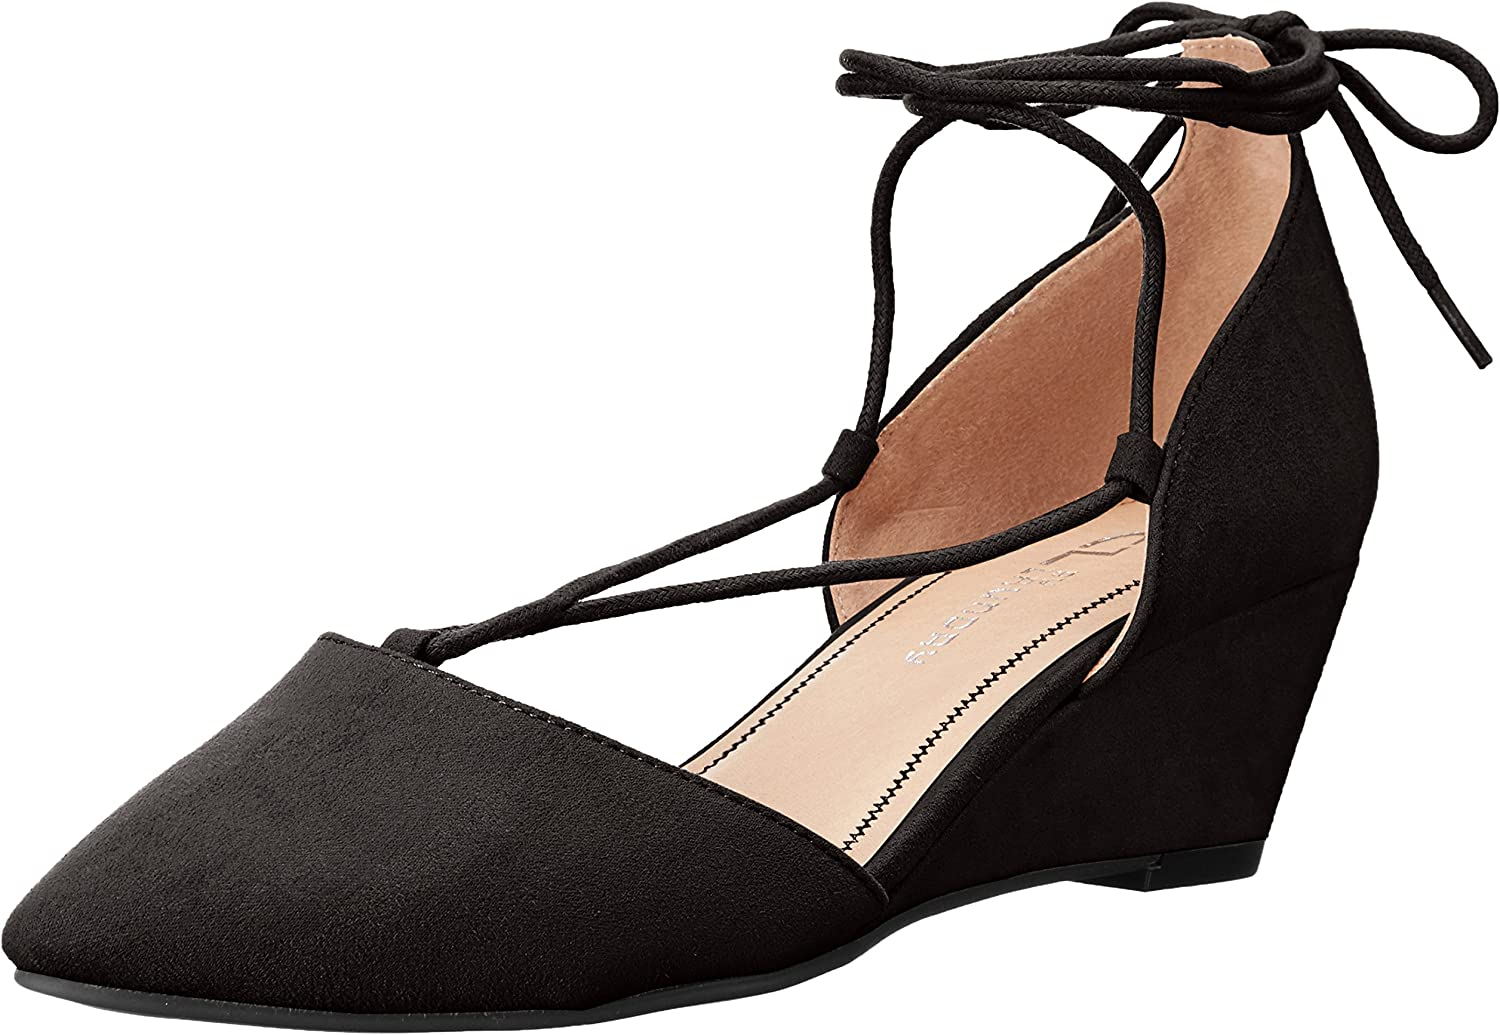 CL by Chinese Laundry Women's Trissa Ghillie Wedge Pump